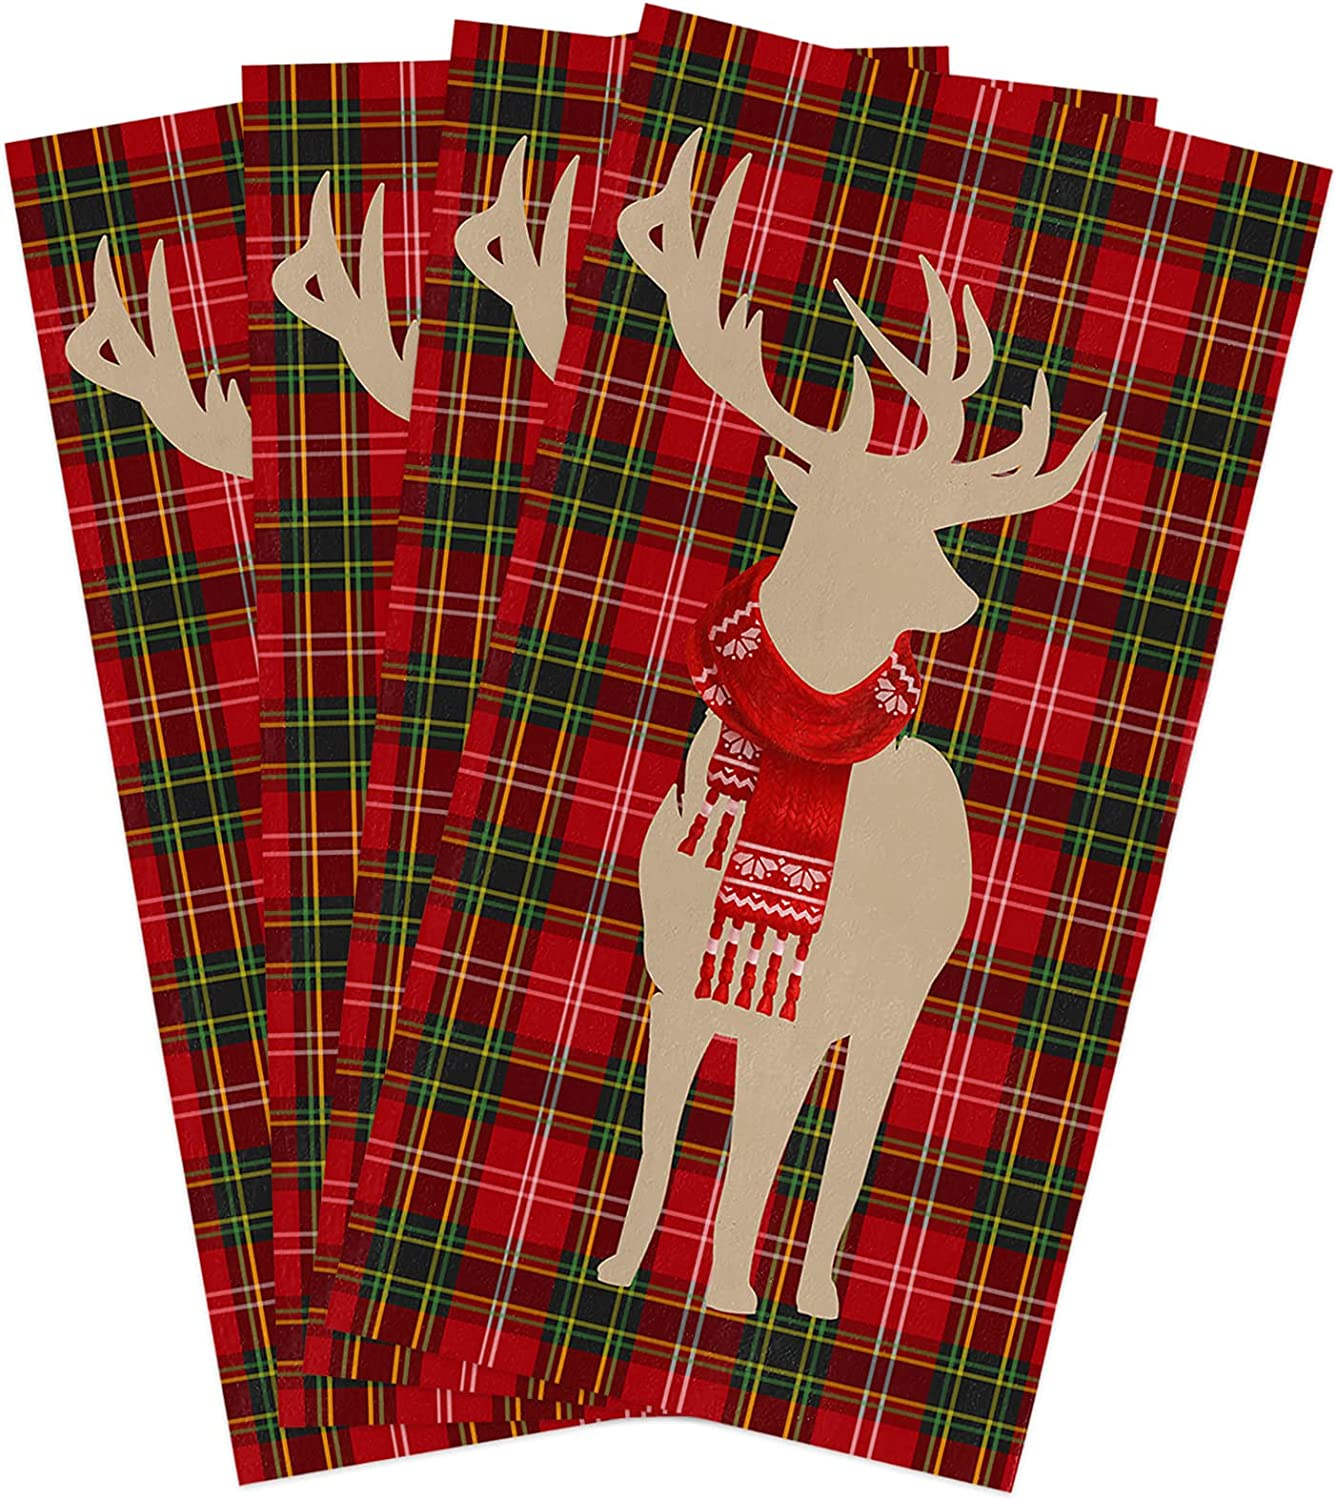 Microfiber Soft Great interest Kitchen Dish Complete Free Shipping Towels Pack 4 De of Christmas Merry